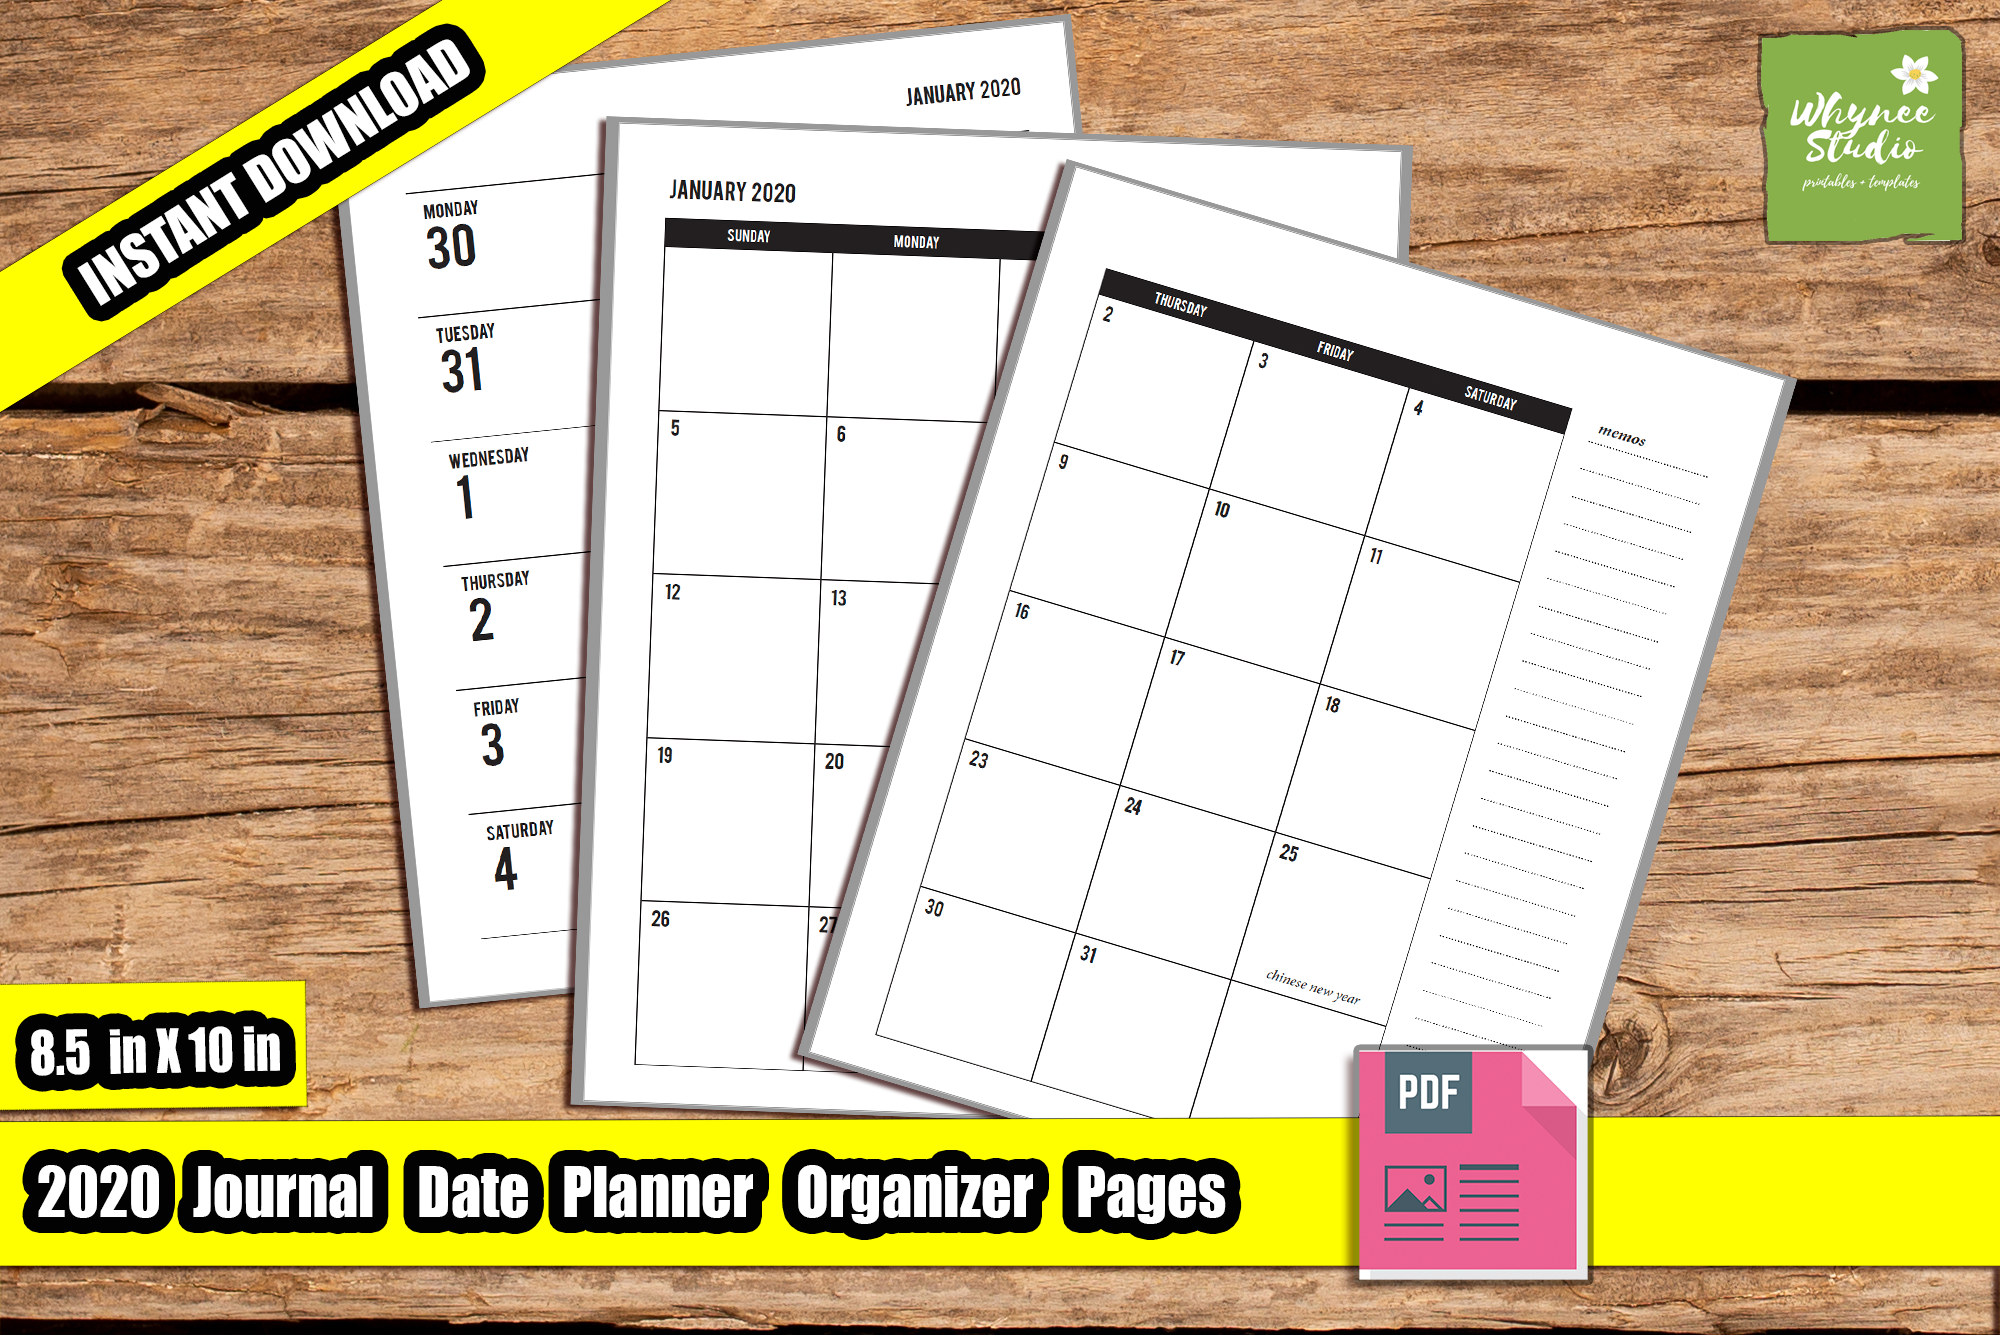 2020 Daily Weekly Monthly Yearly Planner 8in x 10in